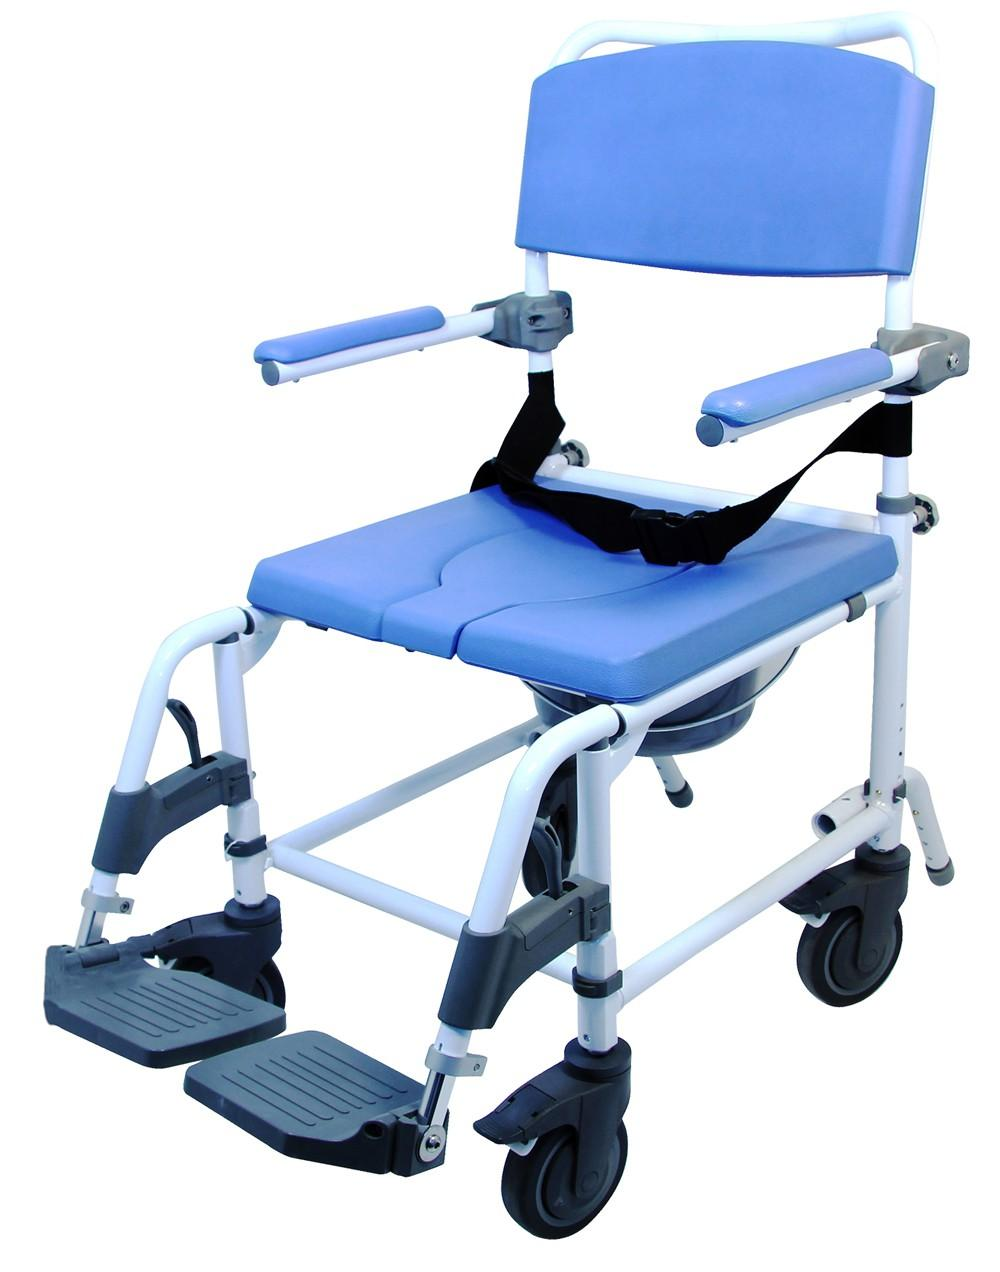 tall seat height ranges Healthline Products 1065 E Story Rd